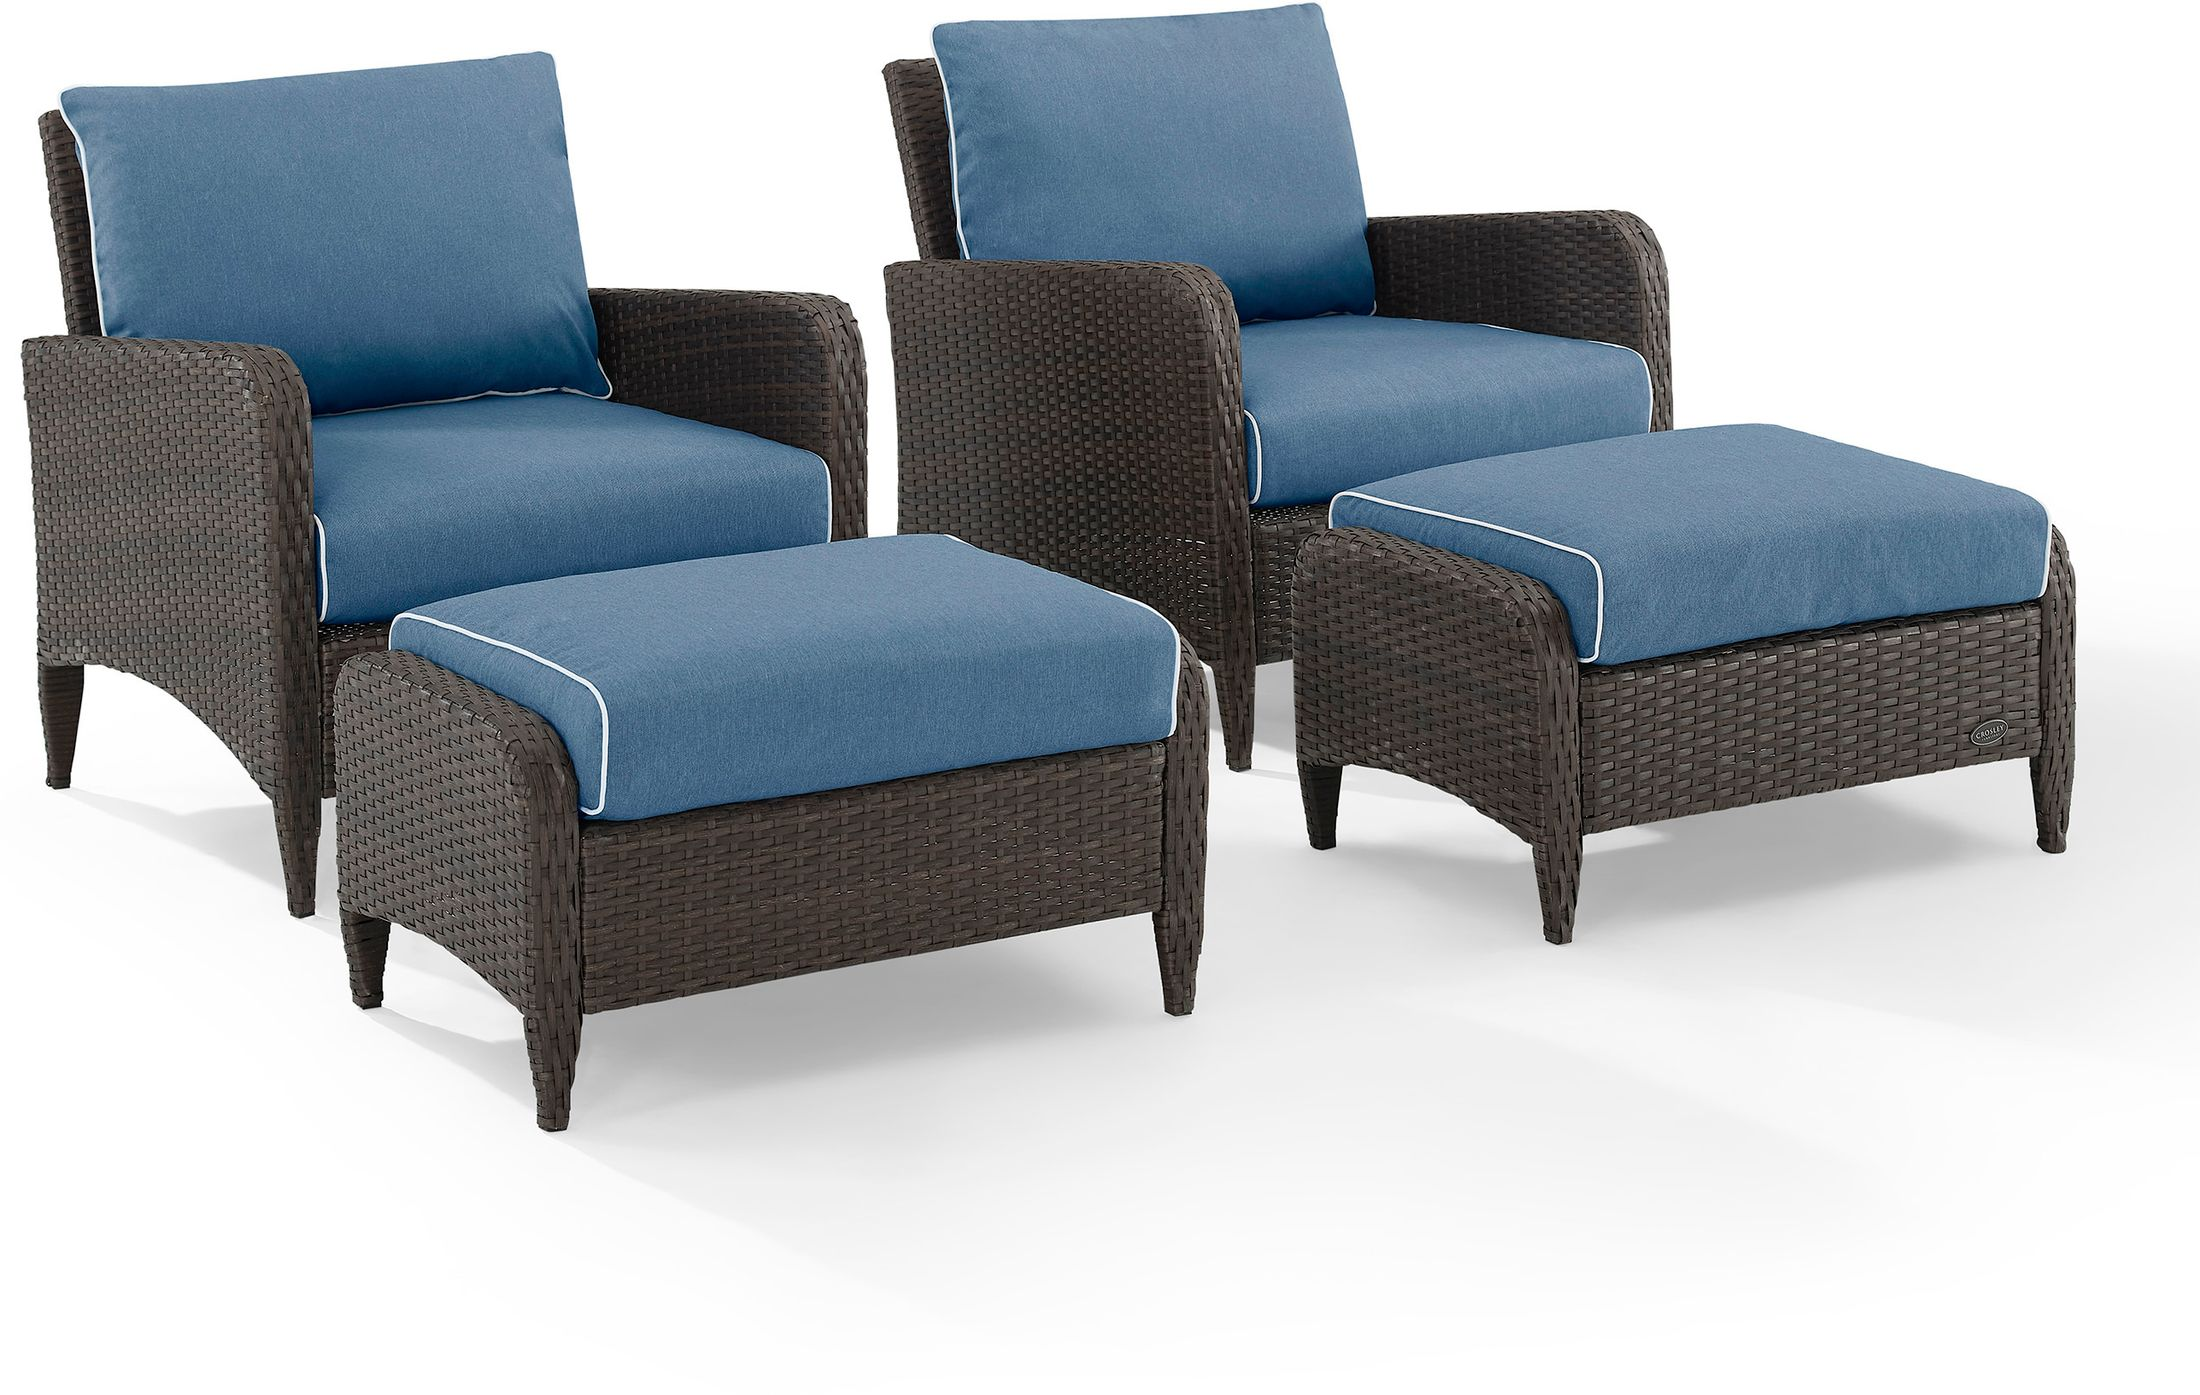 corona set of 2 outdoor chairs and ottomans